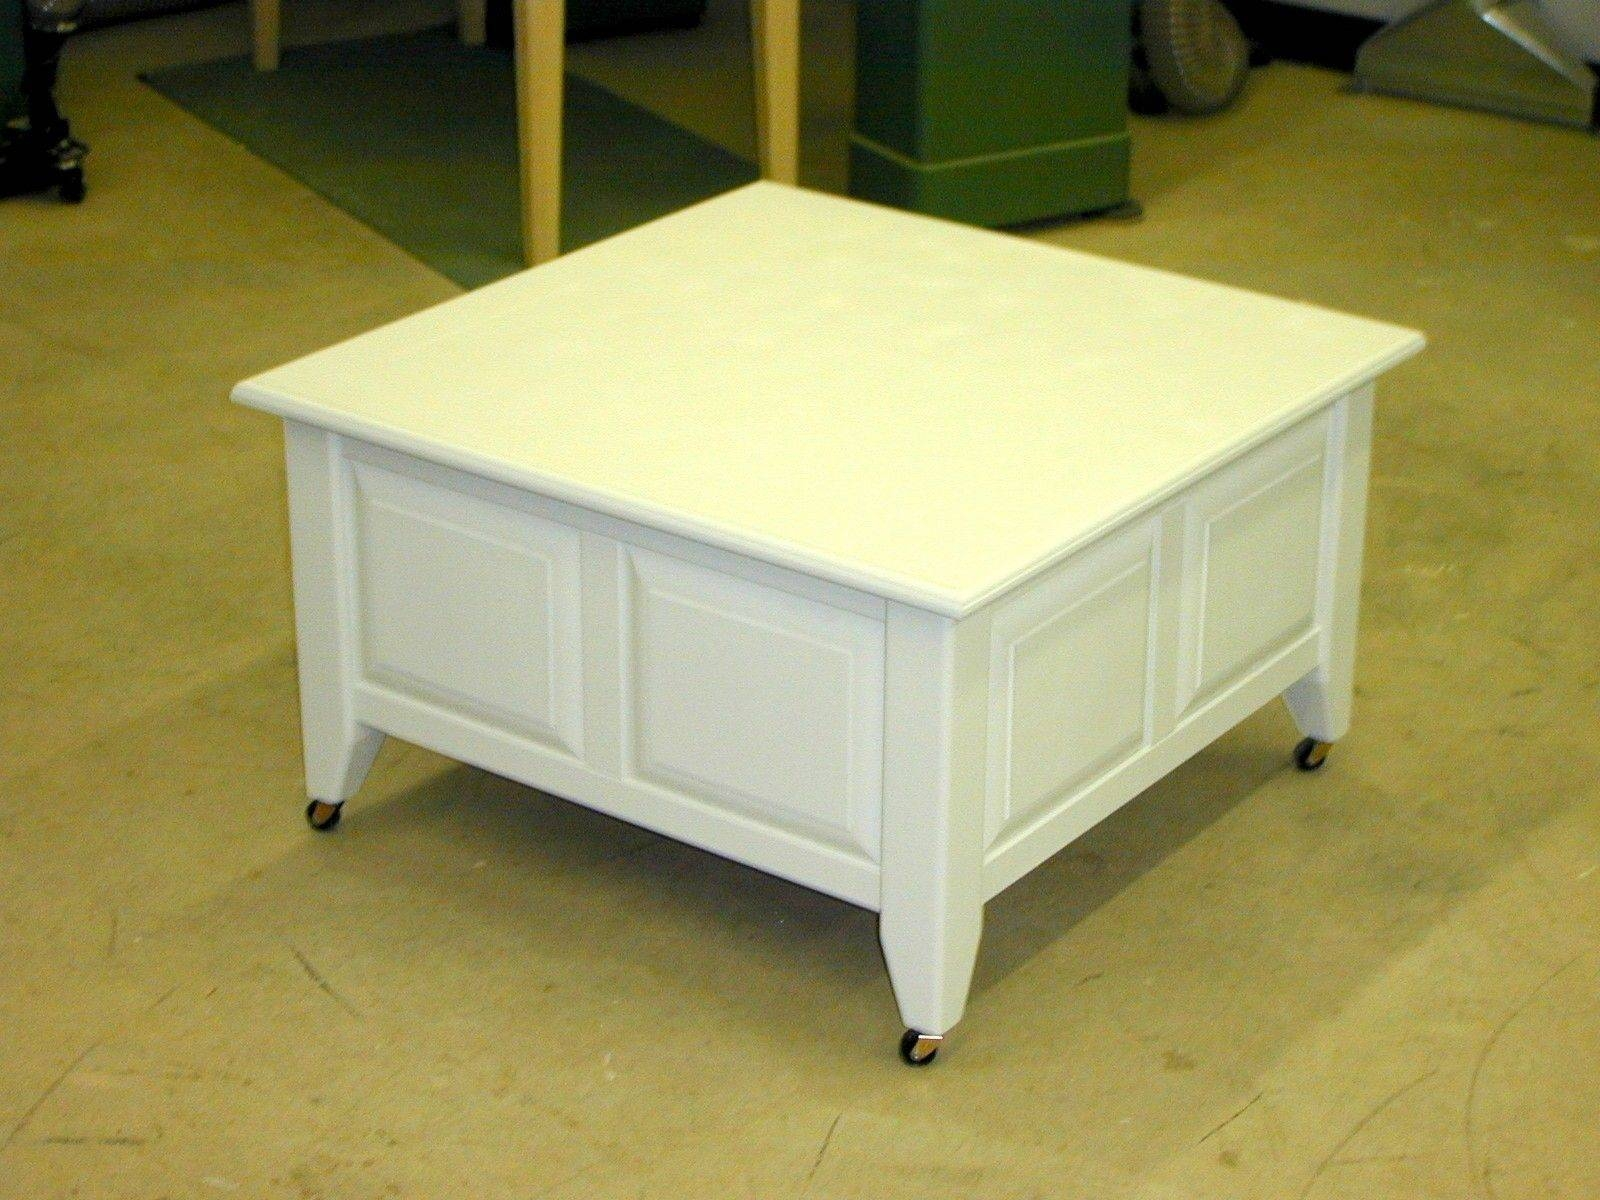 Small Square Coffee Table With Storage | Decorative Table Decoration within Square Coffee Tables With Drawers (Image 26 of 30)